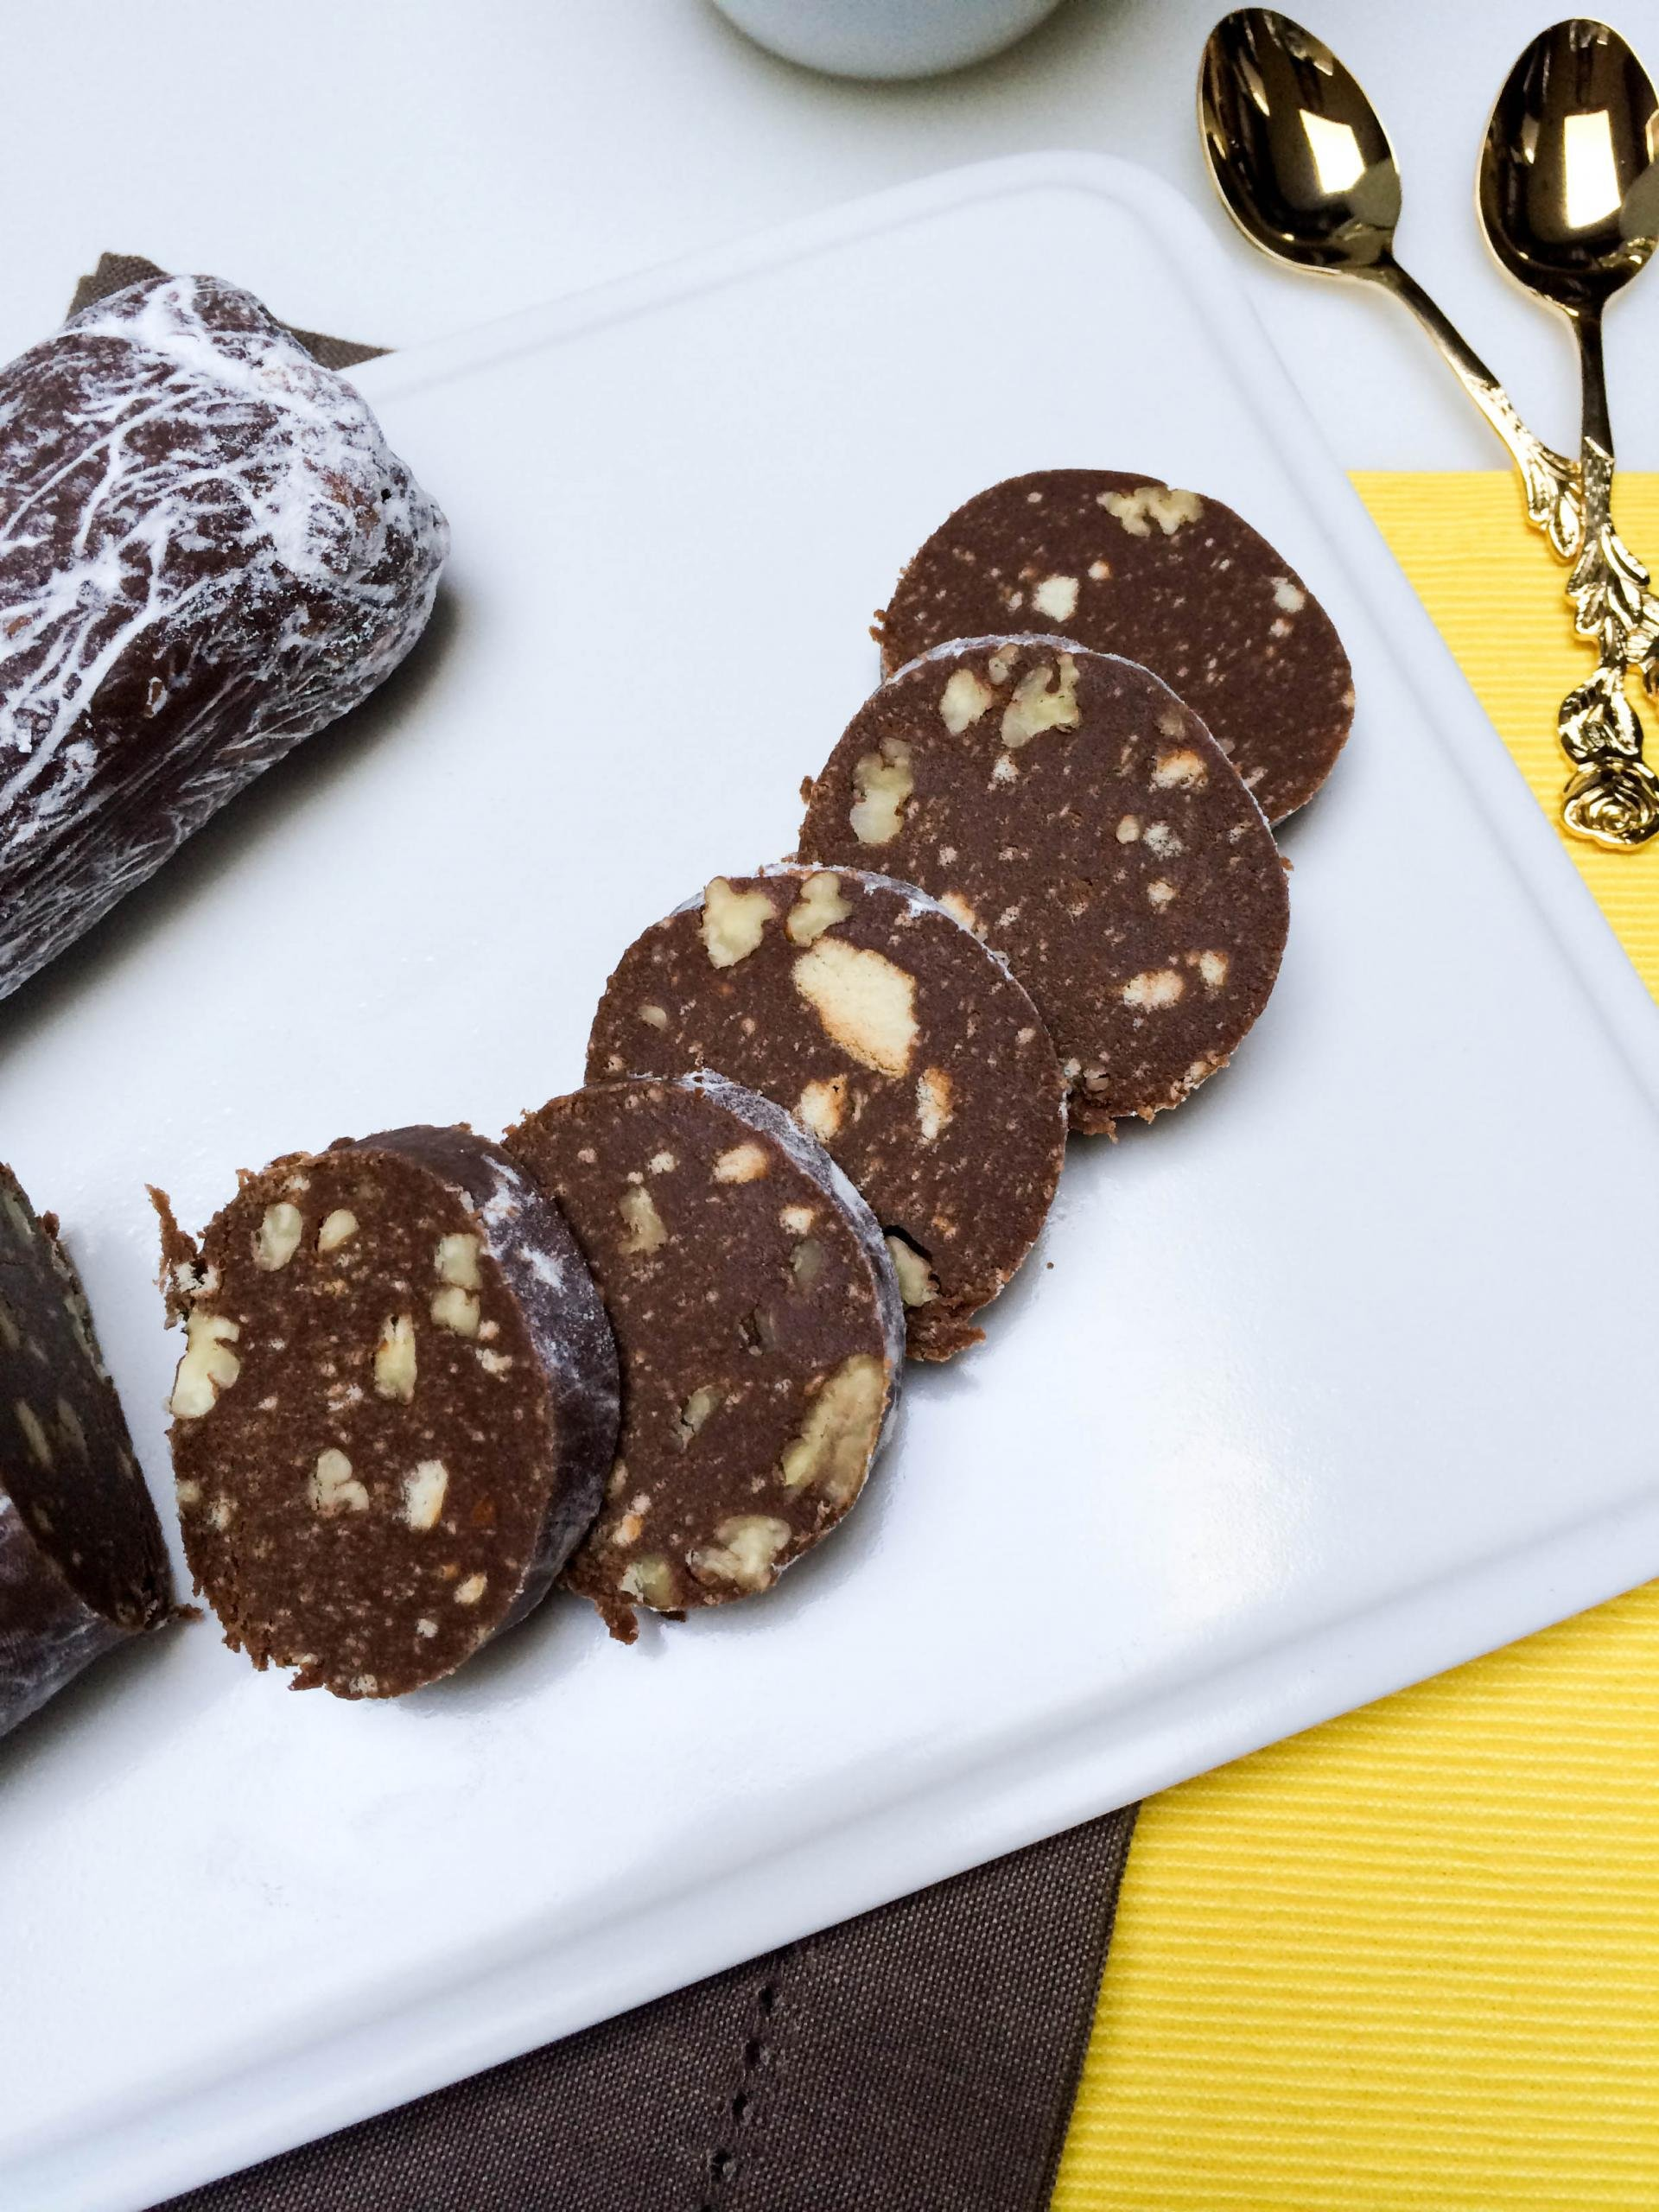 Chocolate Salami cut into slices on a plate